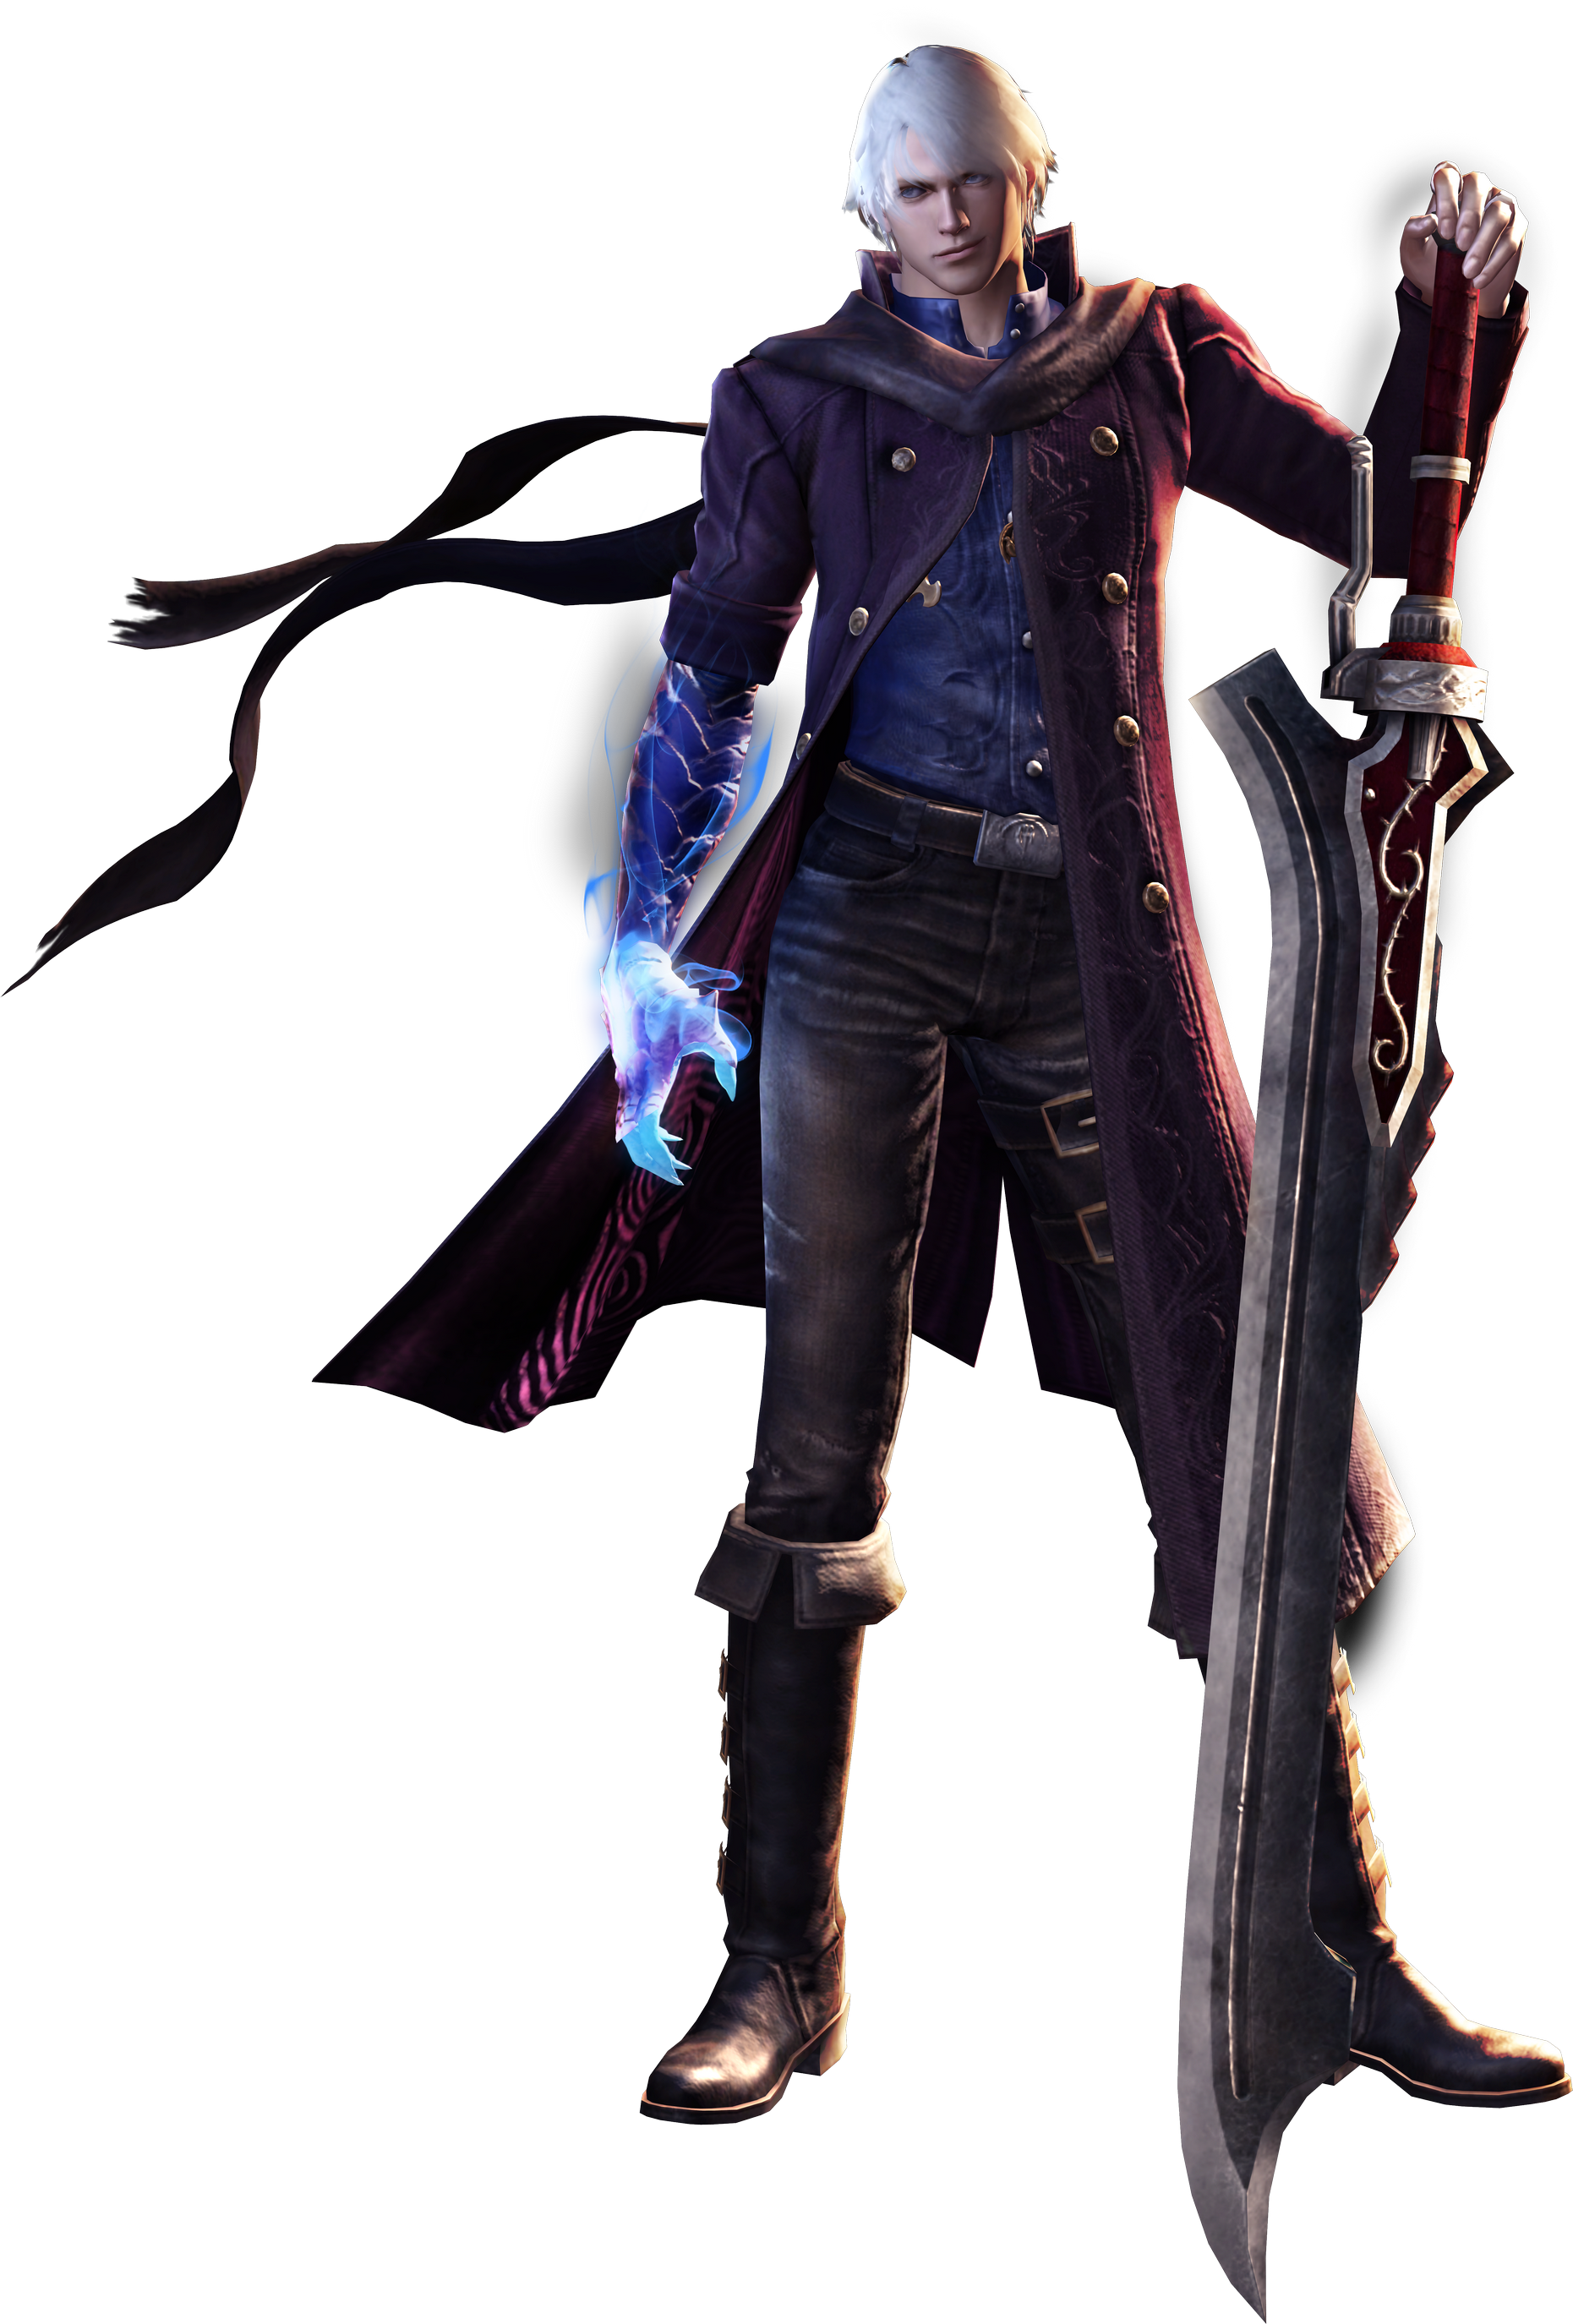 Devil may cry png. Image prototype nero model